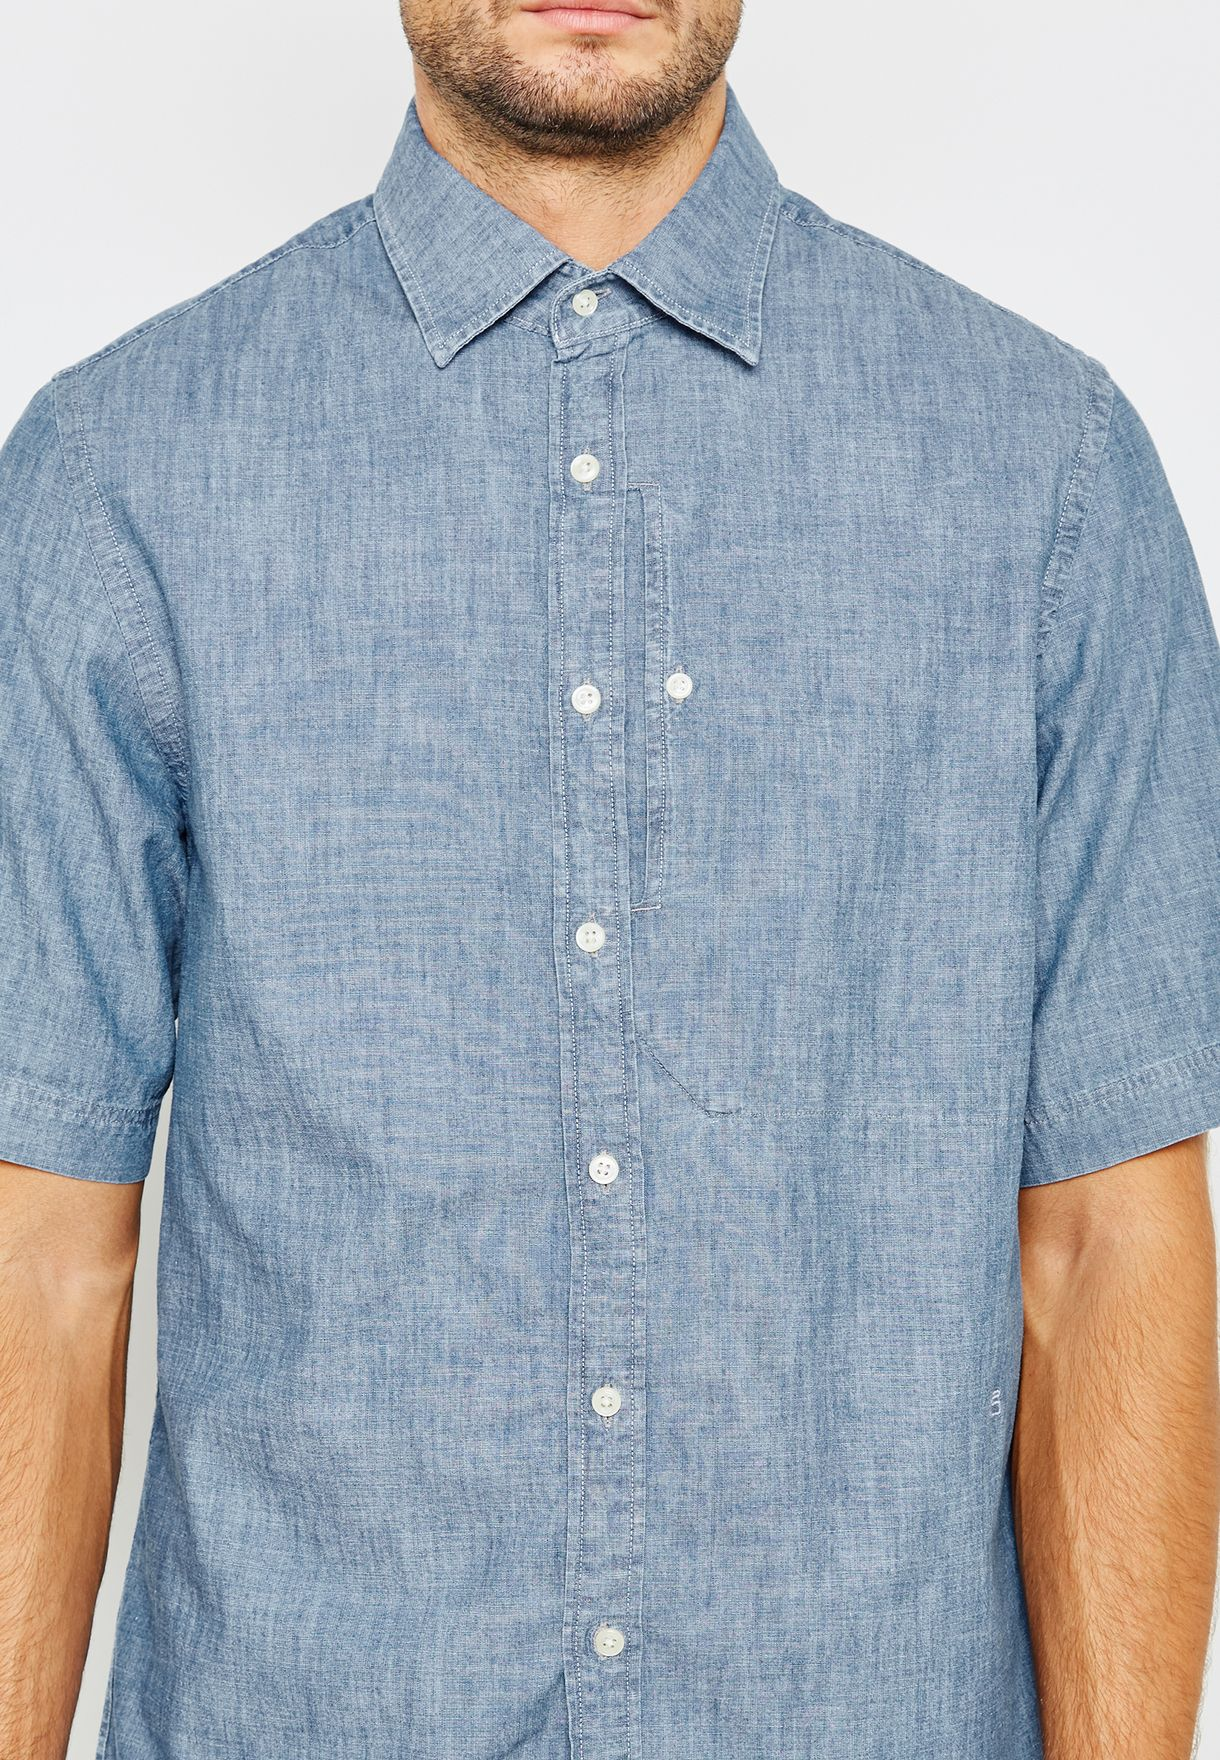 Bristum Straight Fit Shirt